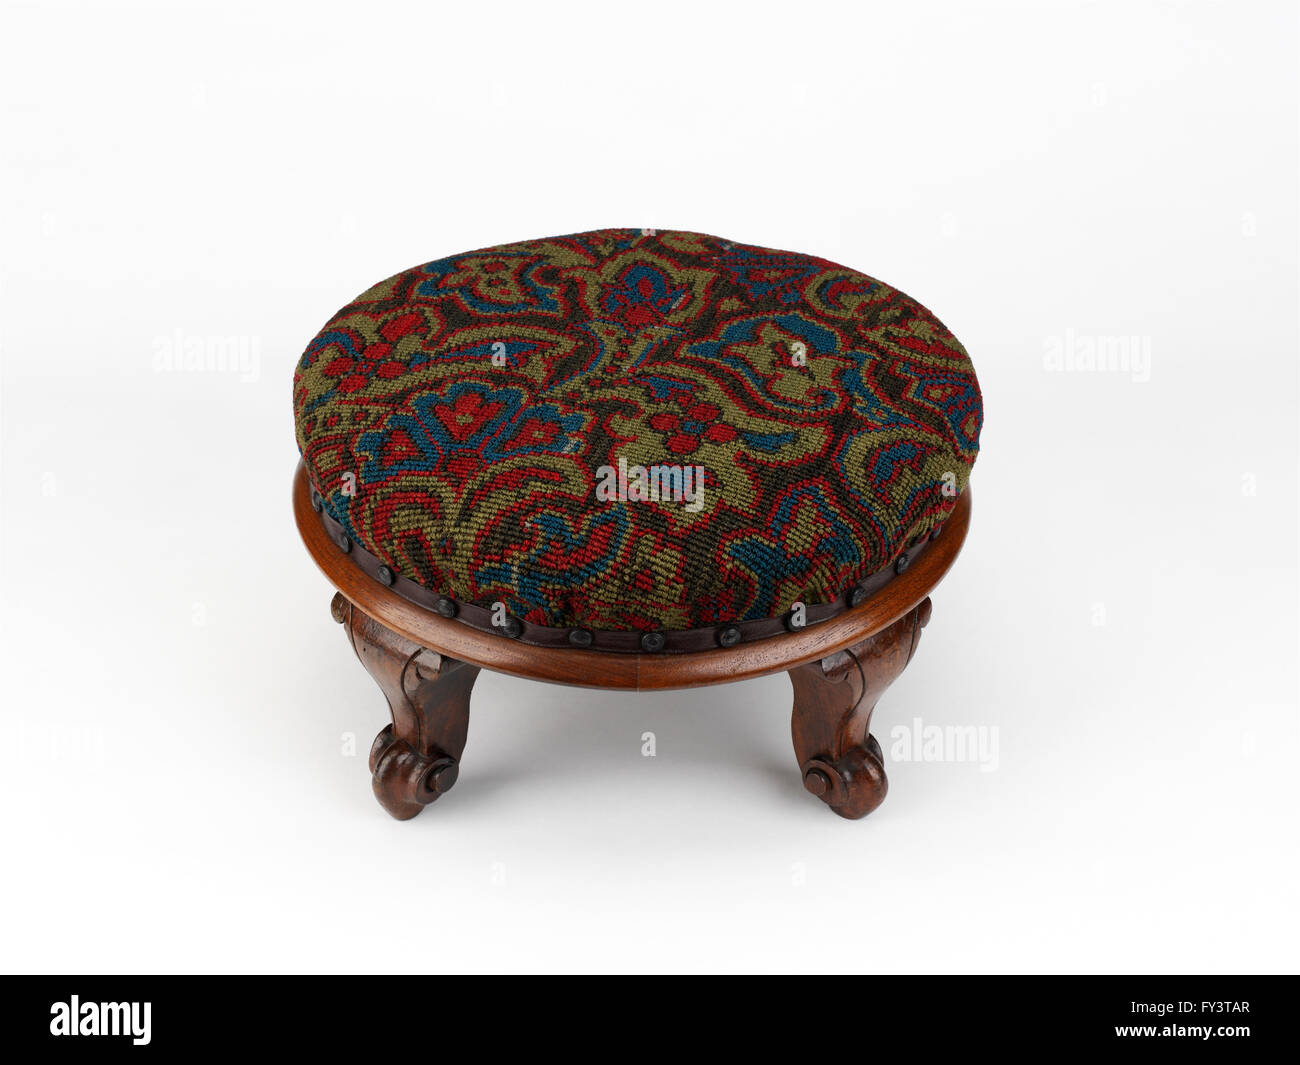 Circular footstool with wooden base and detachable beaded cover - Stock Image